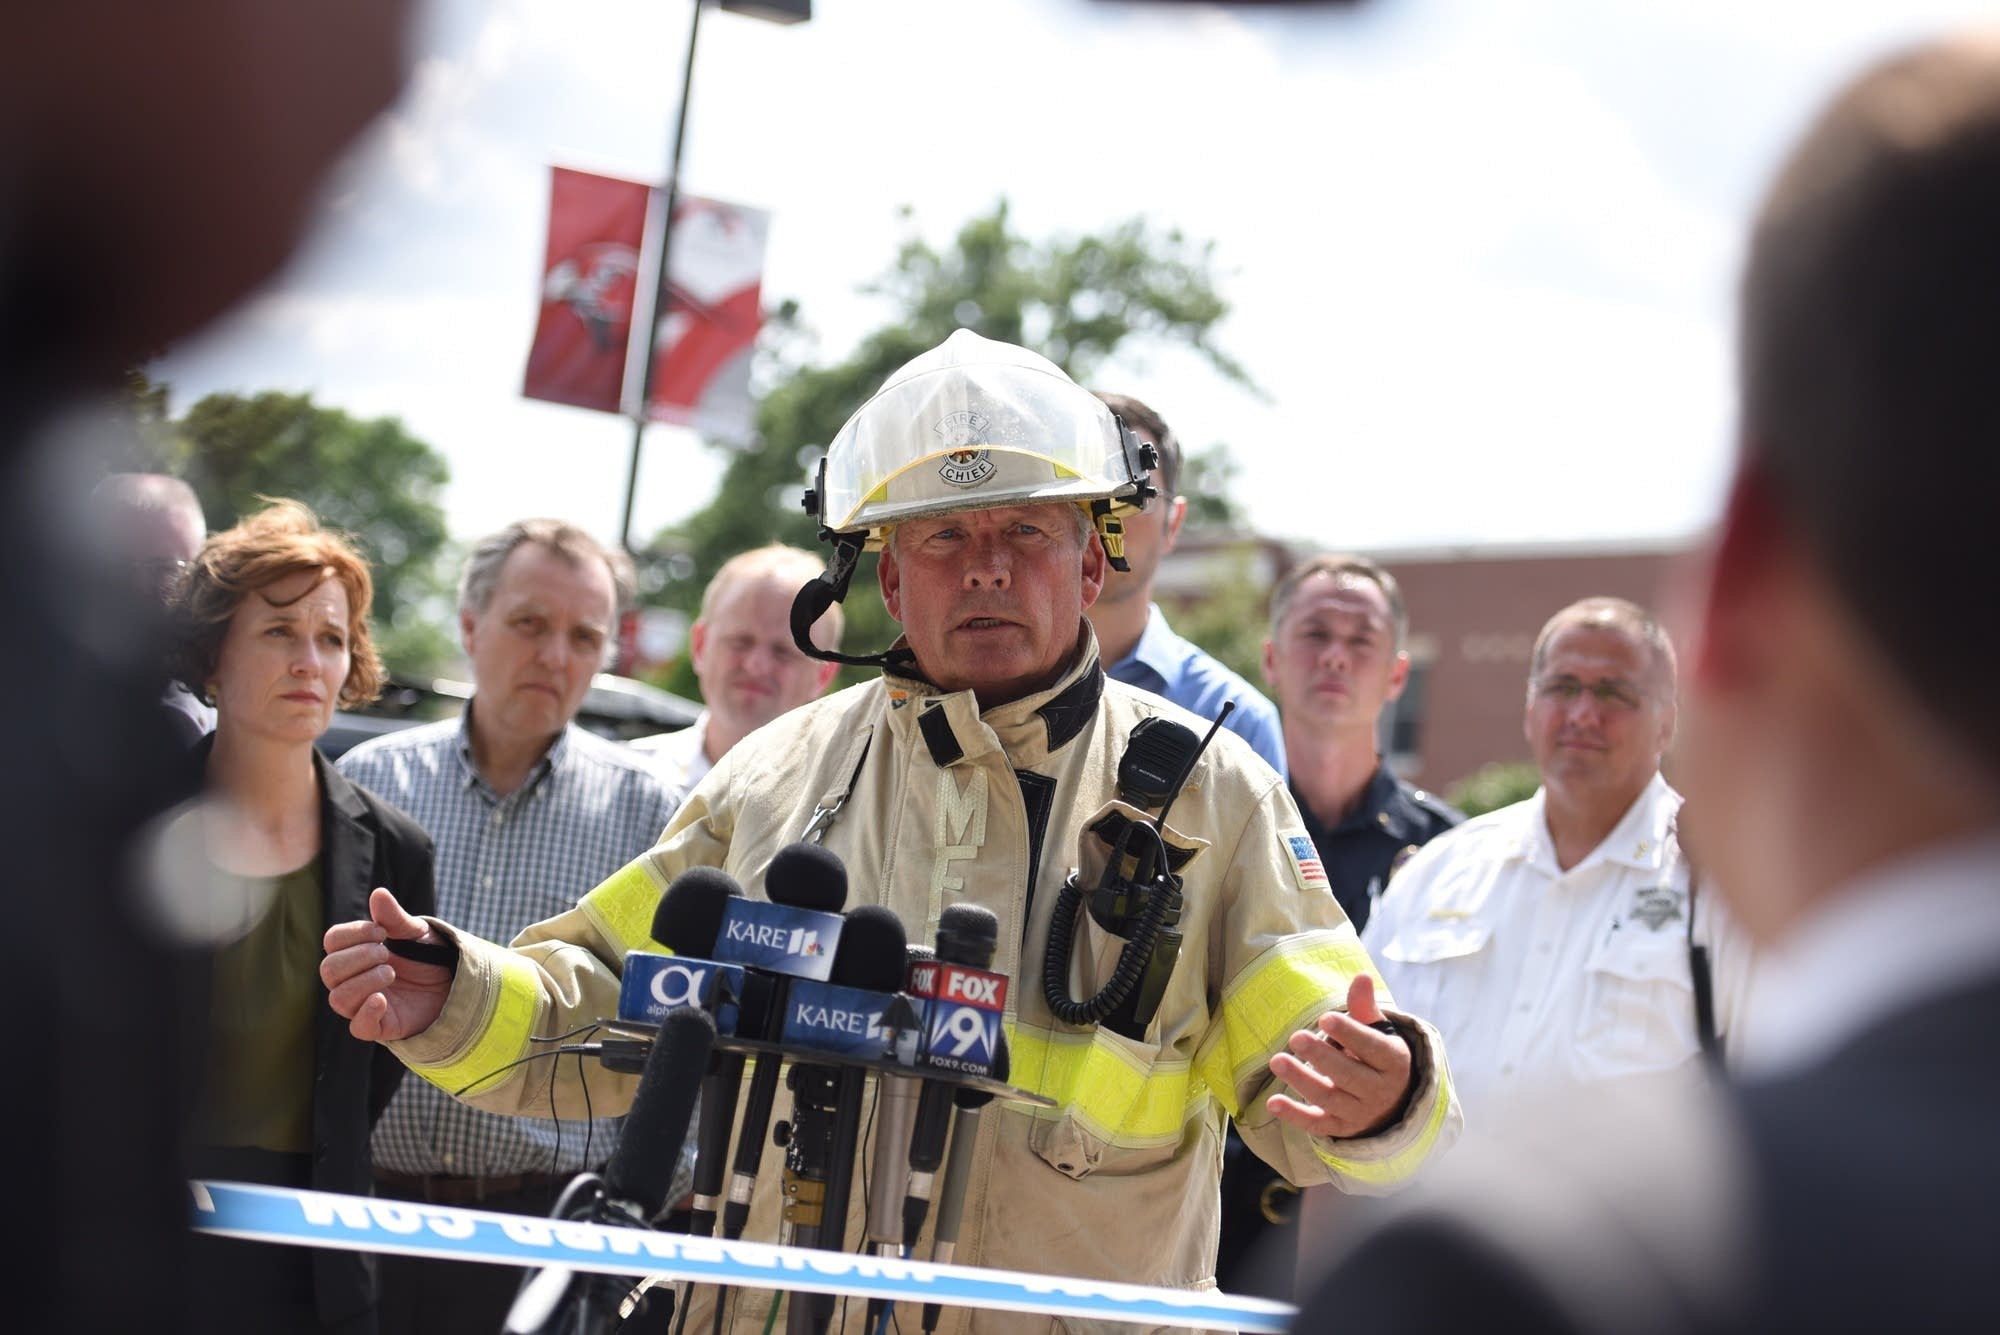 Officials hold news conference after explosion